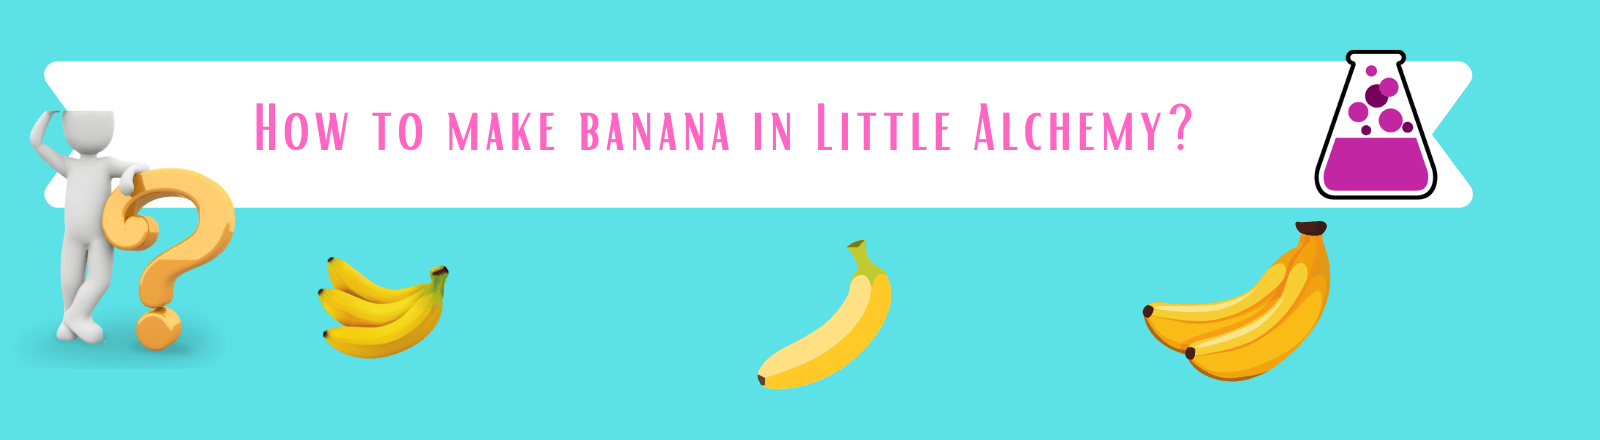 how to make banana in little alchemy